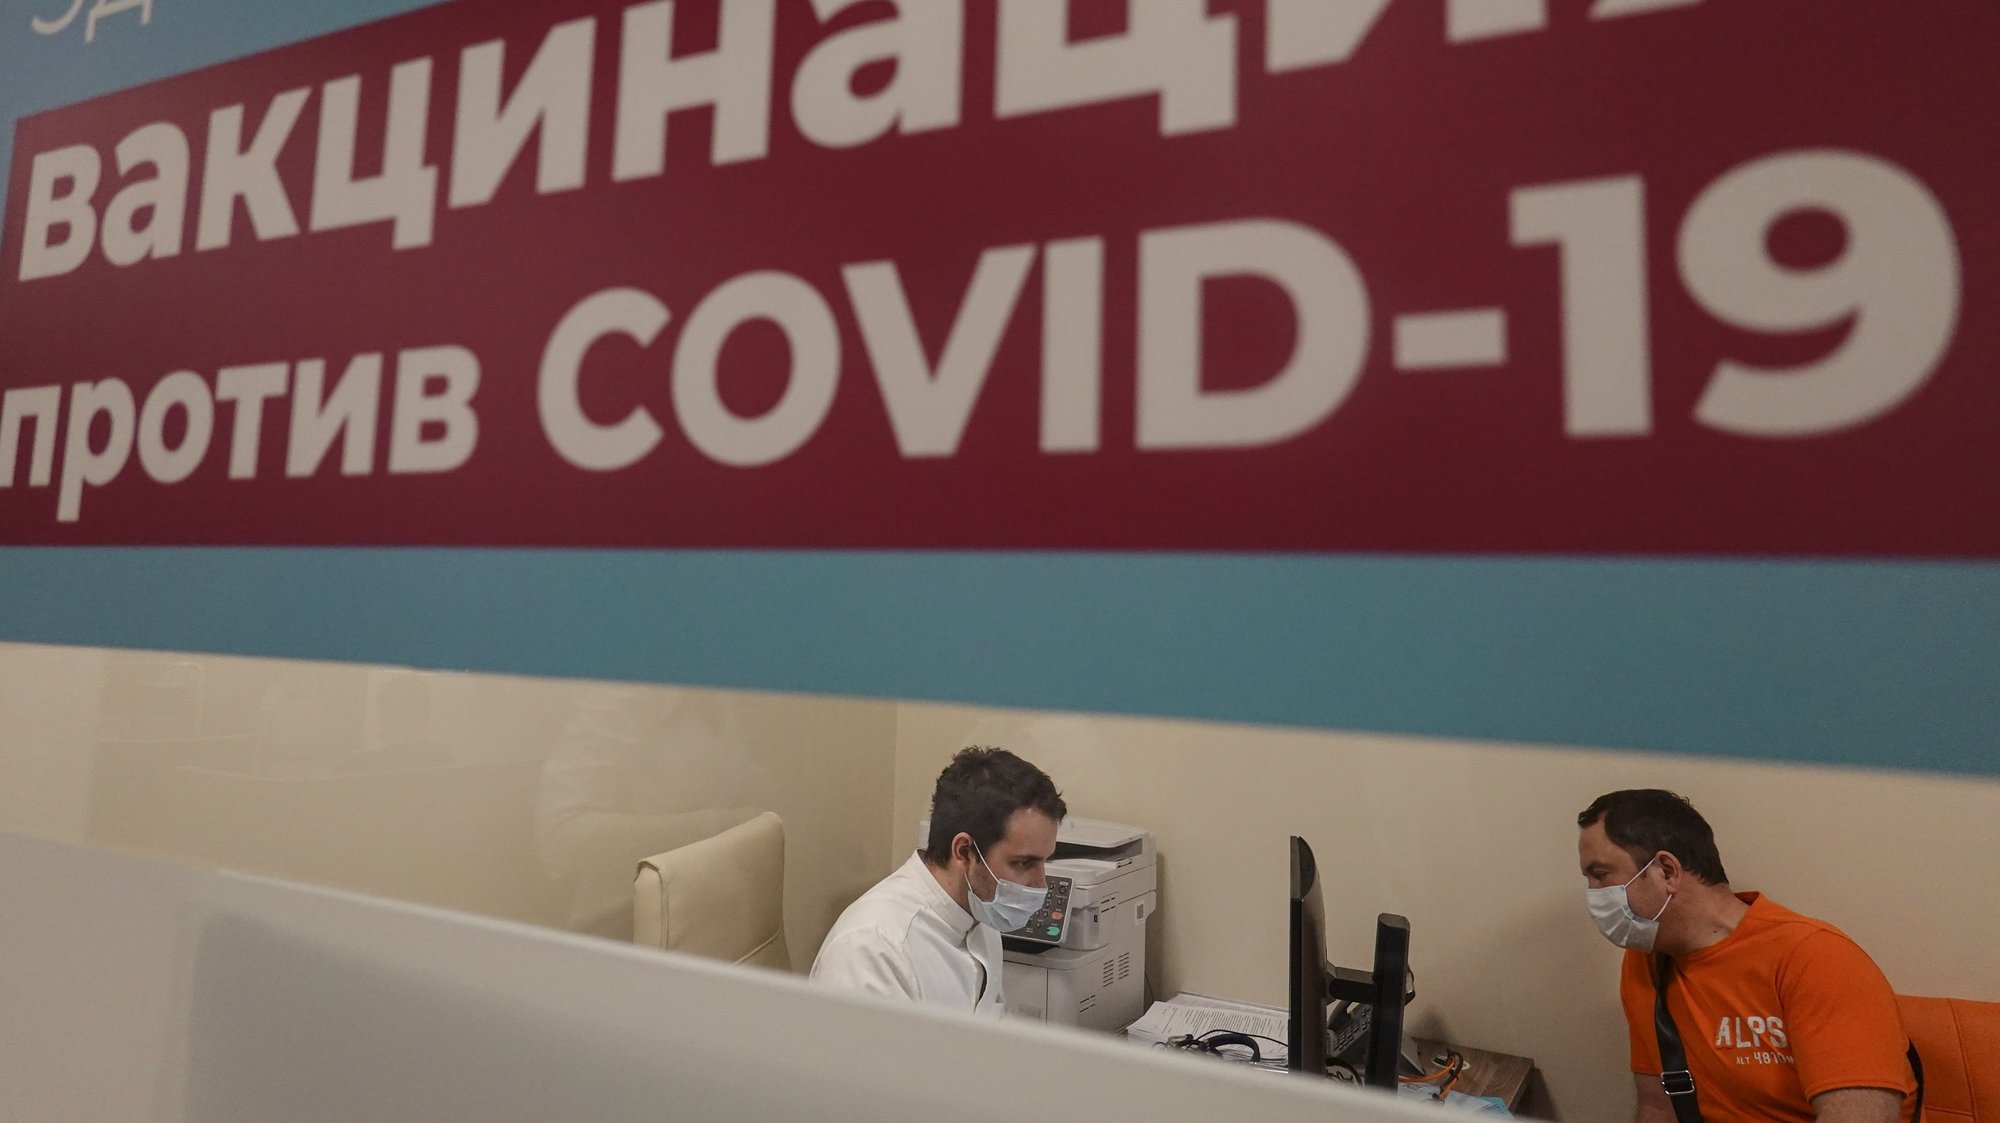 epa08983839 Medics work behind the sign reading 'Vaccination against COVID-19 is carried out here' at the vaccination point at the Columbus shopping mall in Moscow, Russia, 03 February 2021. Russia began a program for mass vaccination against COVID-19 disease, caused by SARS-CoV-2 coronavirus, using the Sputnik V vaccine from January 19. About 8.2 million doses of coronavirus vaccines have been released in Russia. More than 420 thousand people were vaccinated in Moscow. The number of vaccination stations in Russia is growing rapidly: in about a week it increased almost one and a half times - from 2.25 thousand to 3.1 thousand.  EPA/SERGEI ILNITSKY